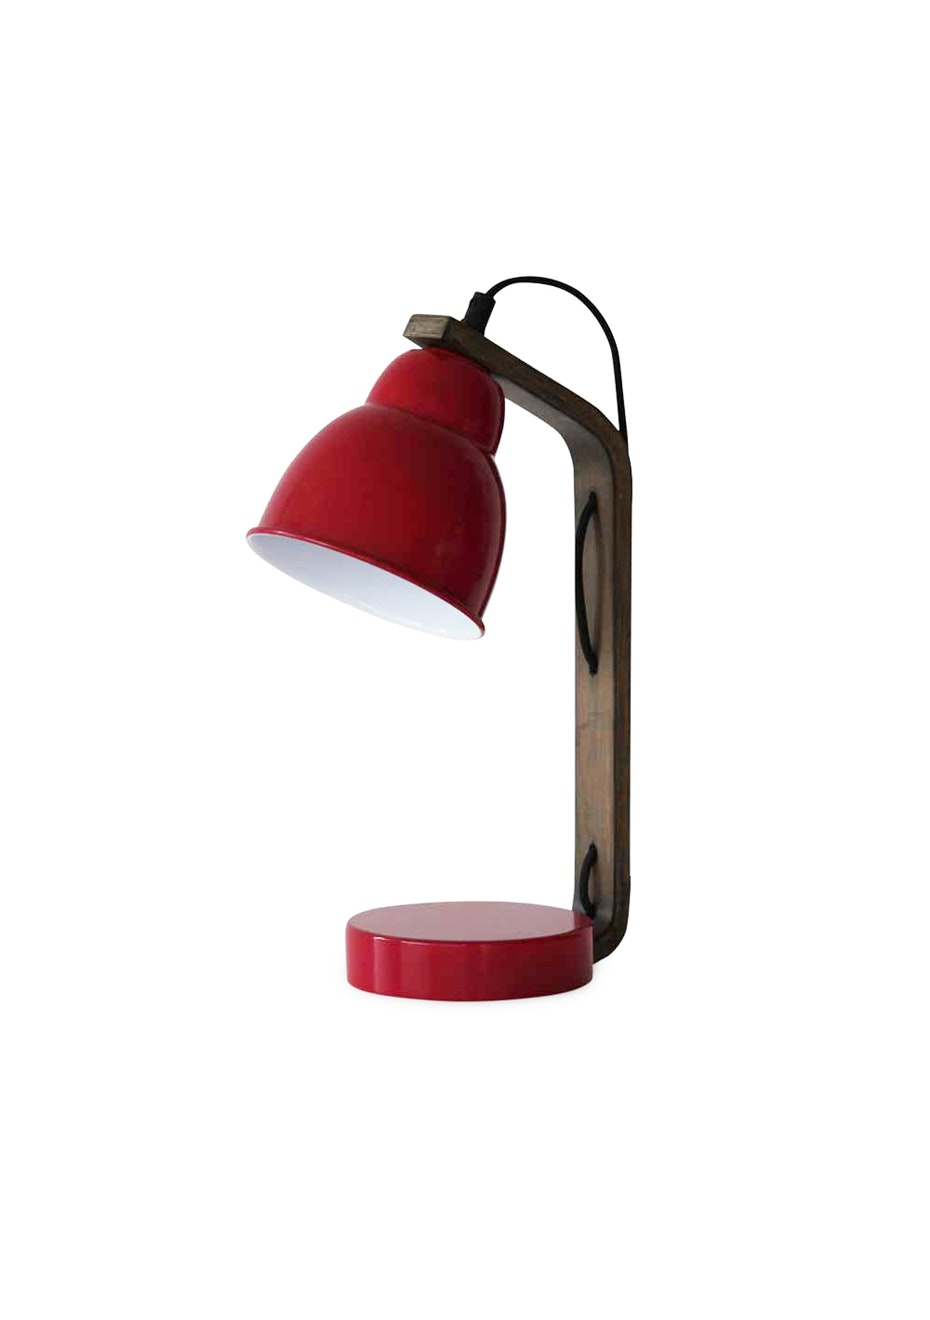 Me & My Trend - Marsala Red Curved Lamp